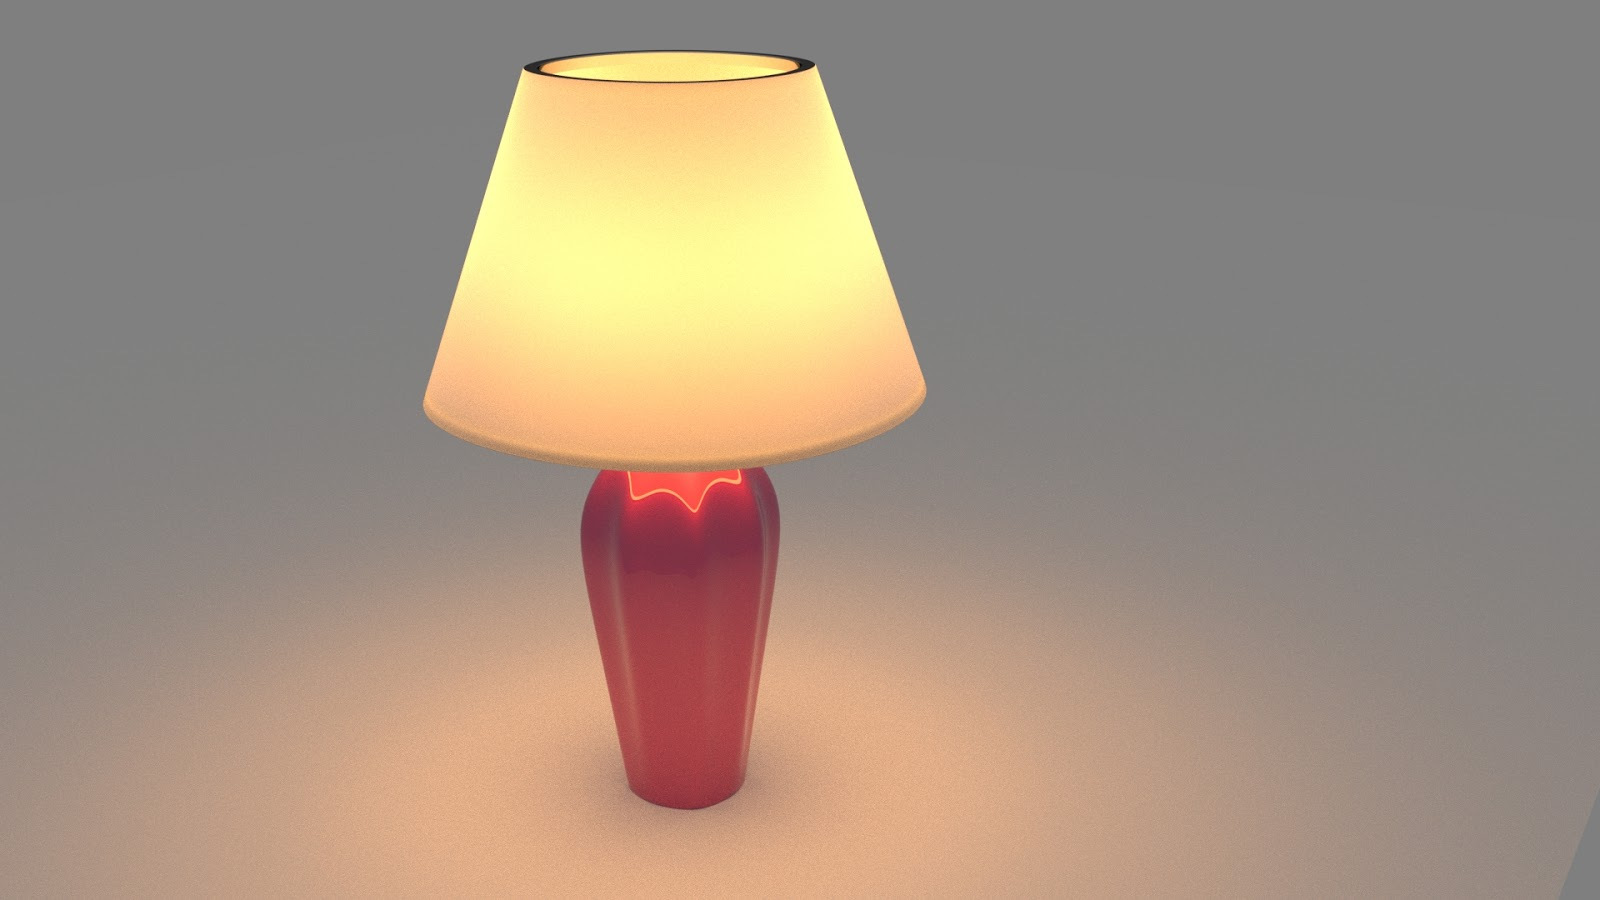 Free 3D Classic Night Lamp .blend file